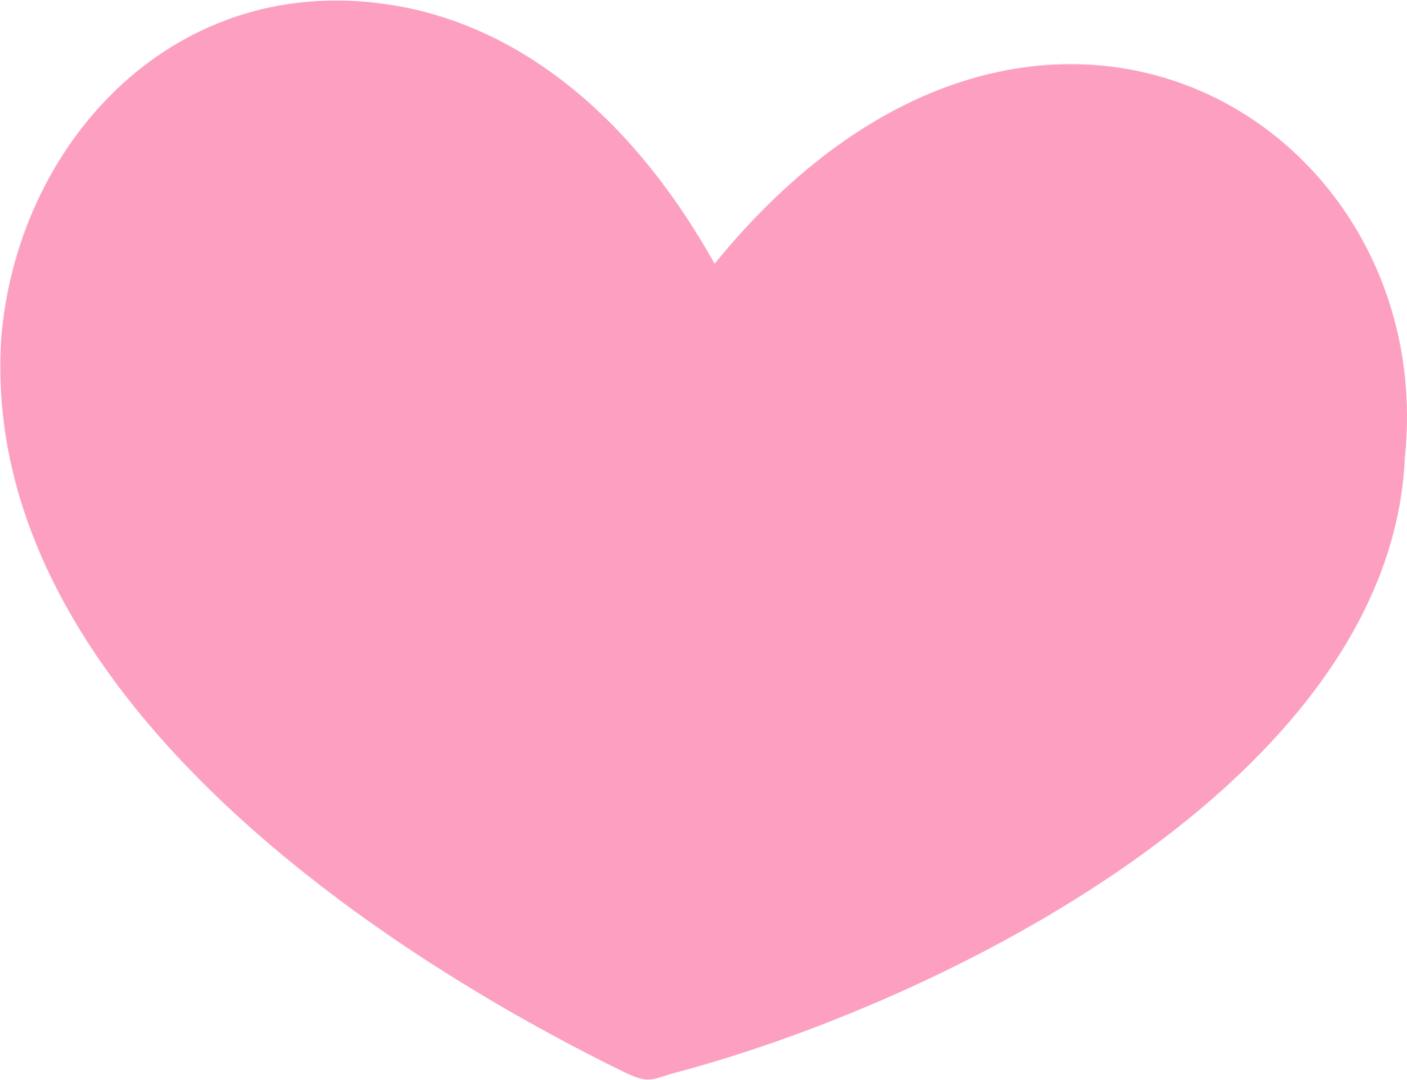 Cute hearts png. Shared ver todas